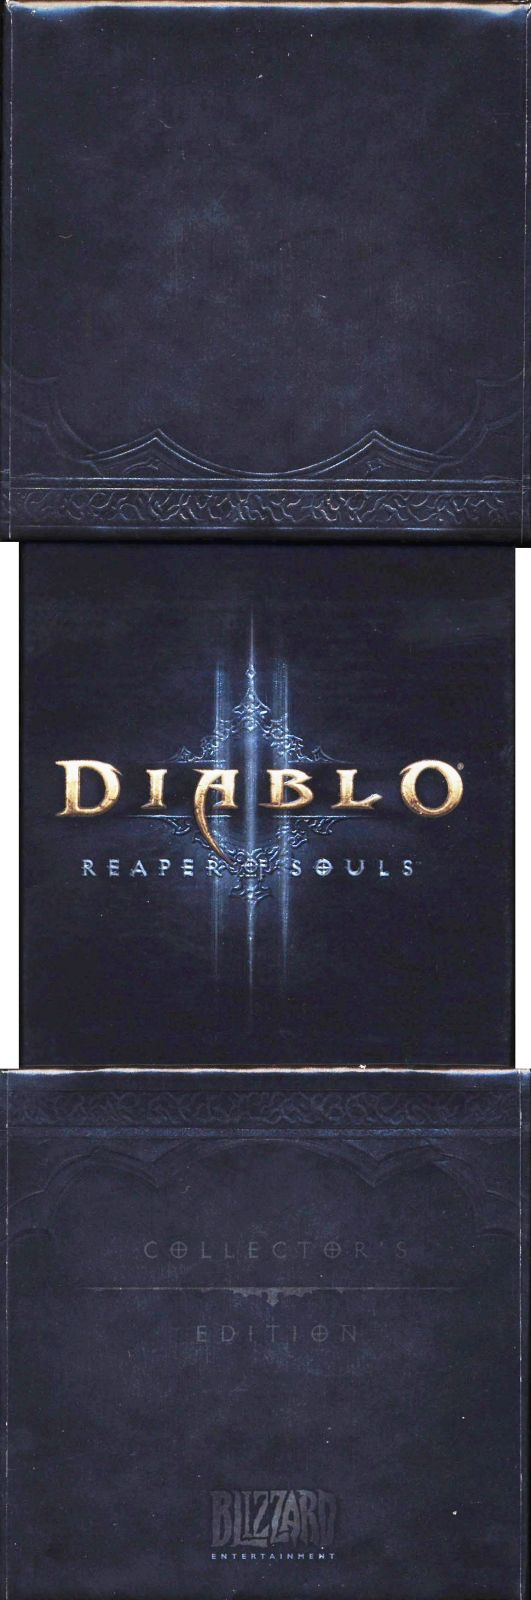 Diablo III: Reaper of Souls (Collector's Edition) Macintosh Spine/Sides Left